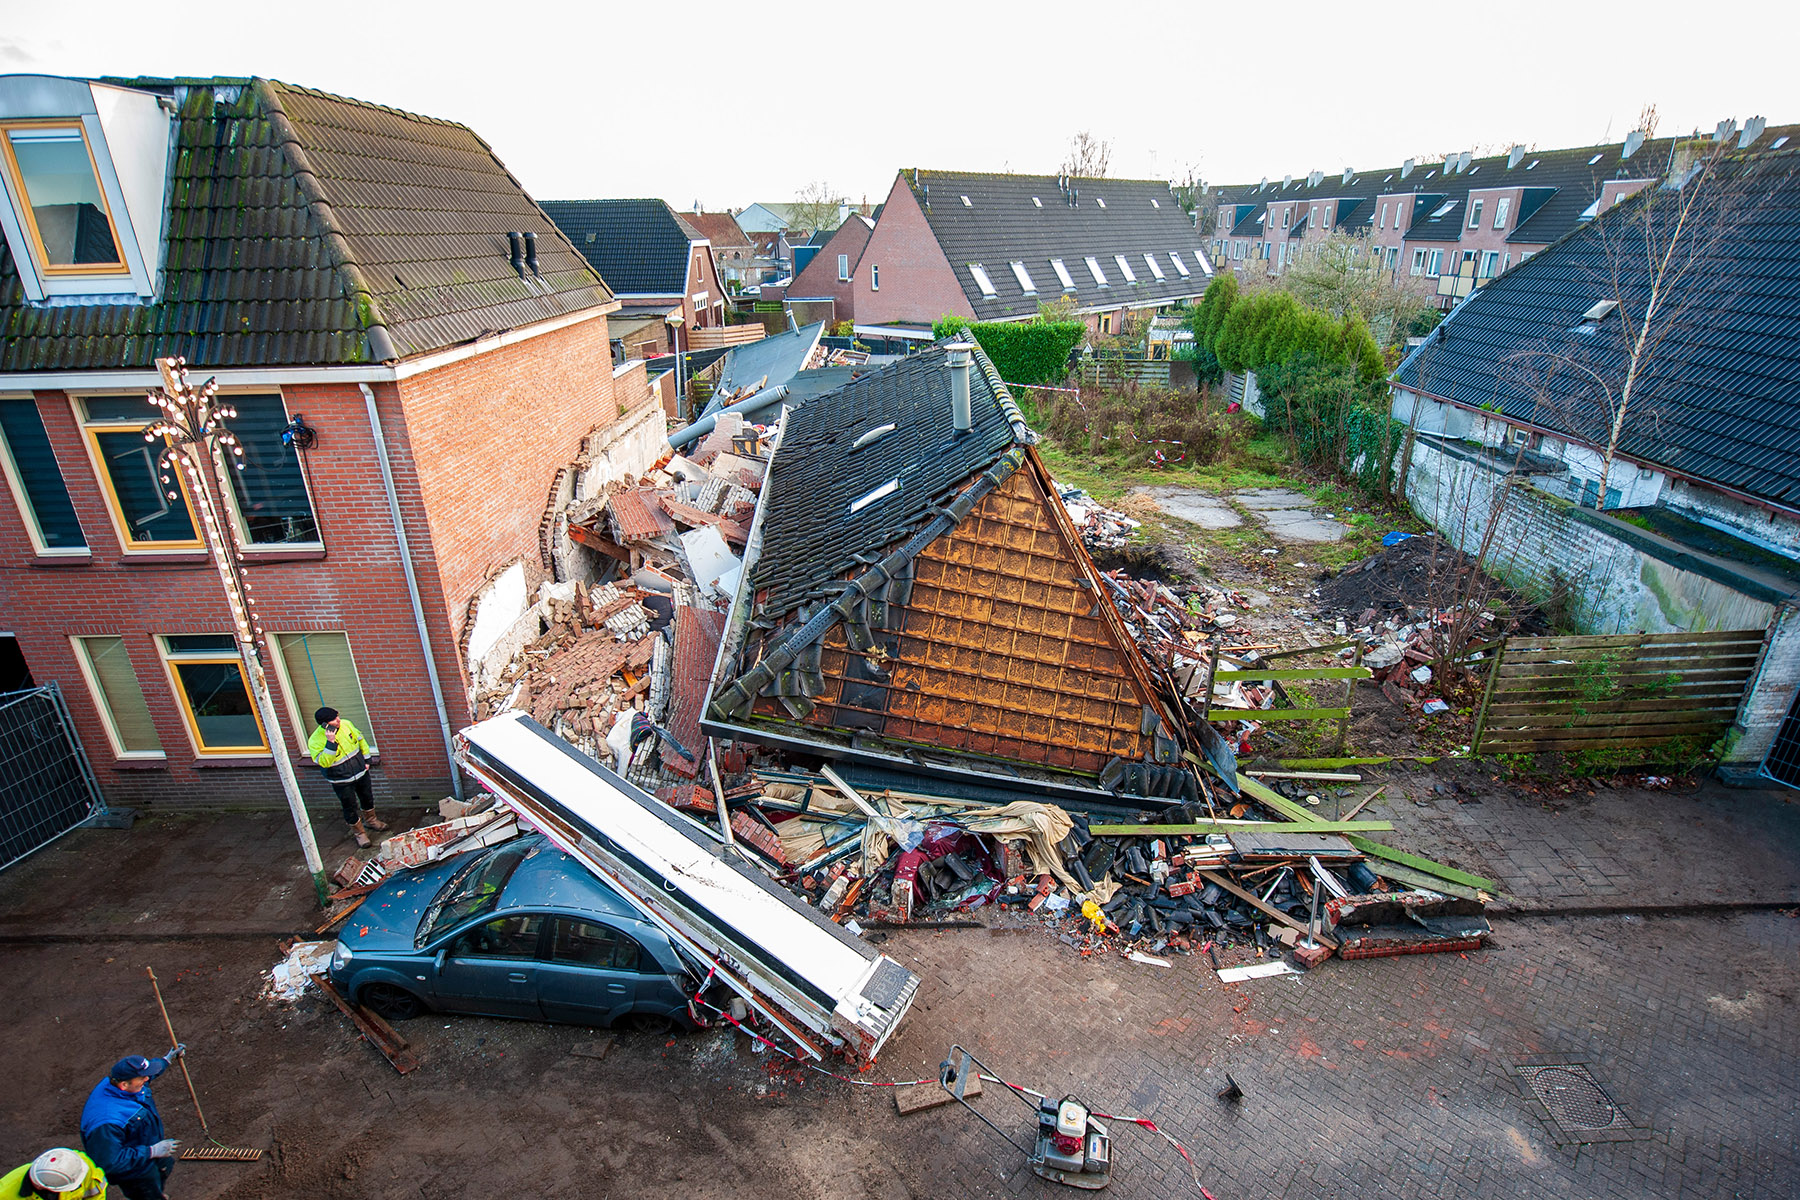 Collapsed home in Coevorden, the Netherlands